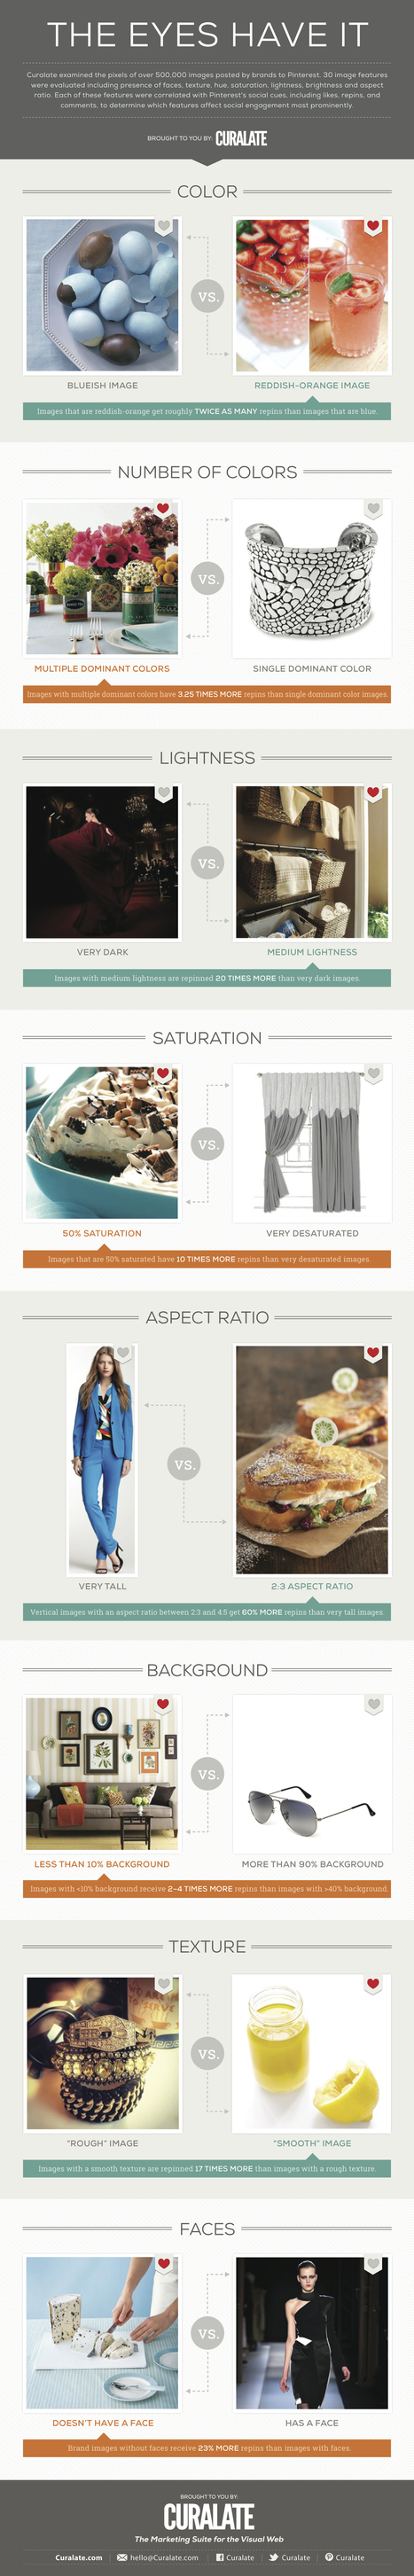 The Science Of The Perfect Pinterest Post [Infographic] - Business 2 Community | Better know and better use Social Media today (facebook, twitter...) | Scoop.it